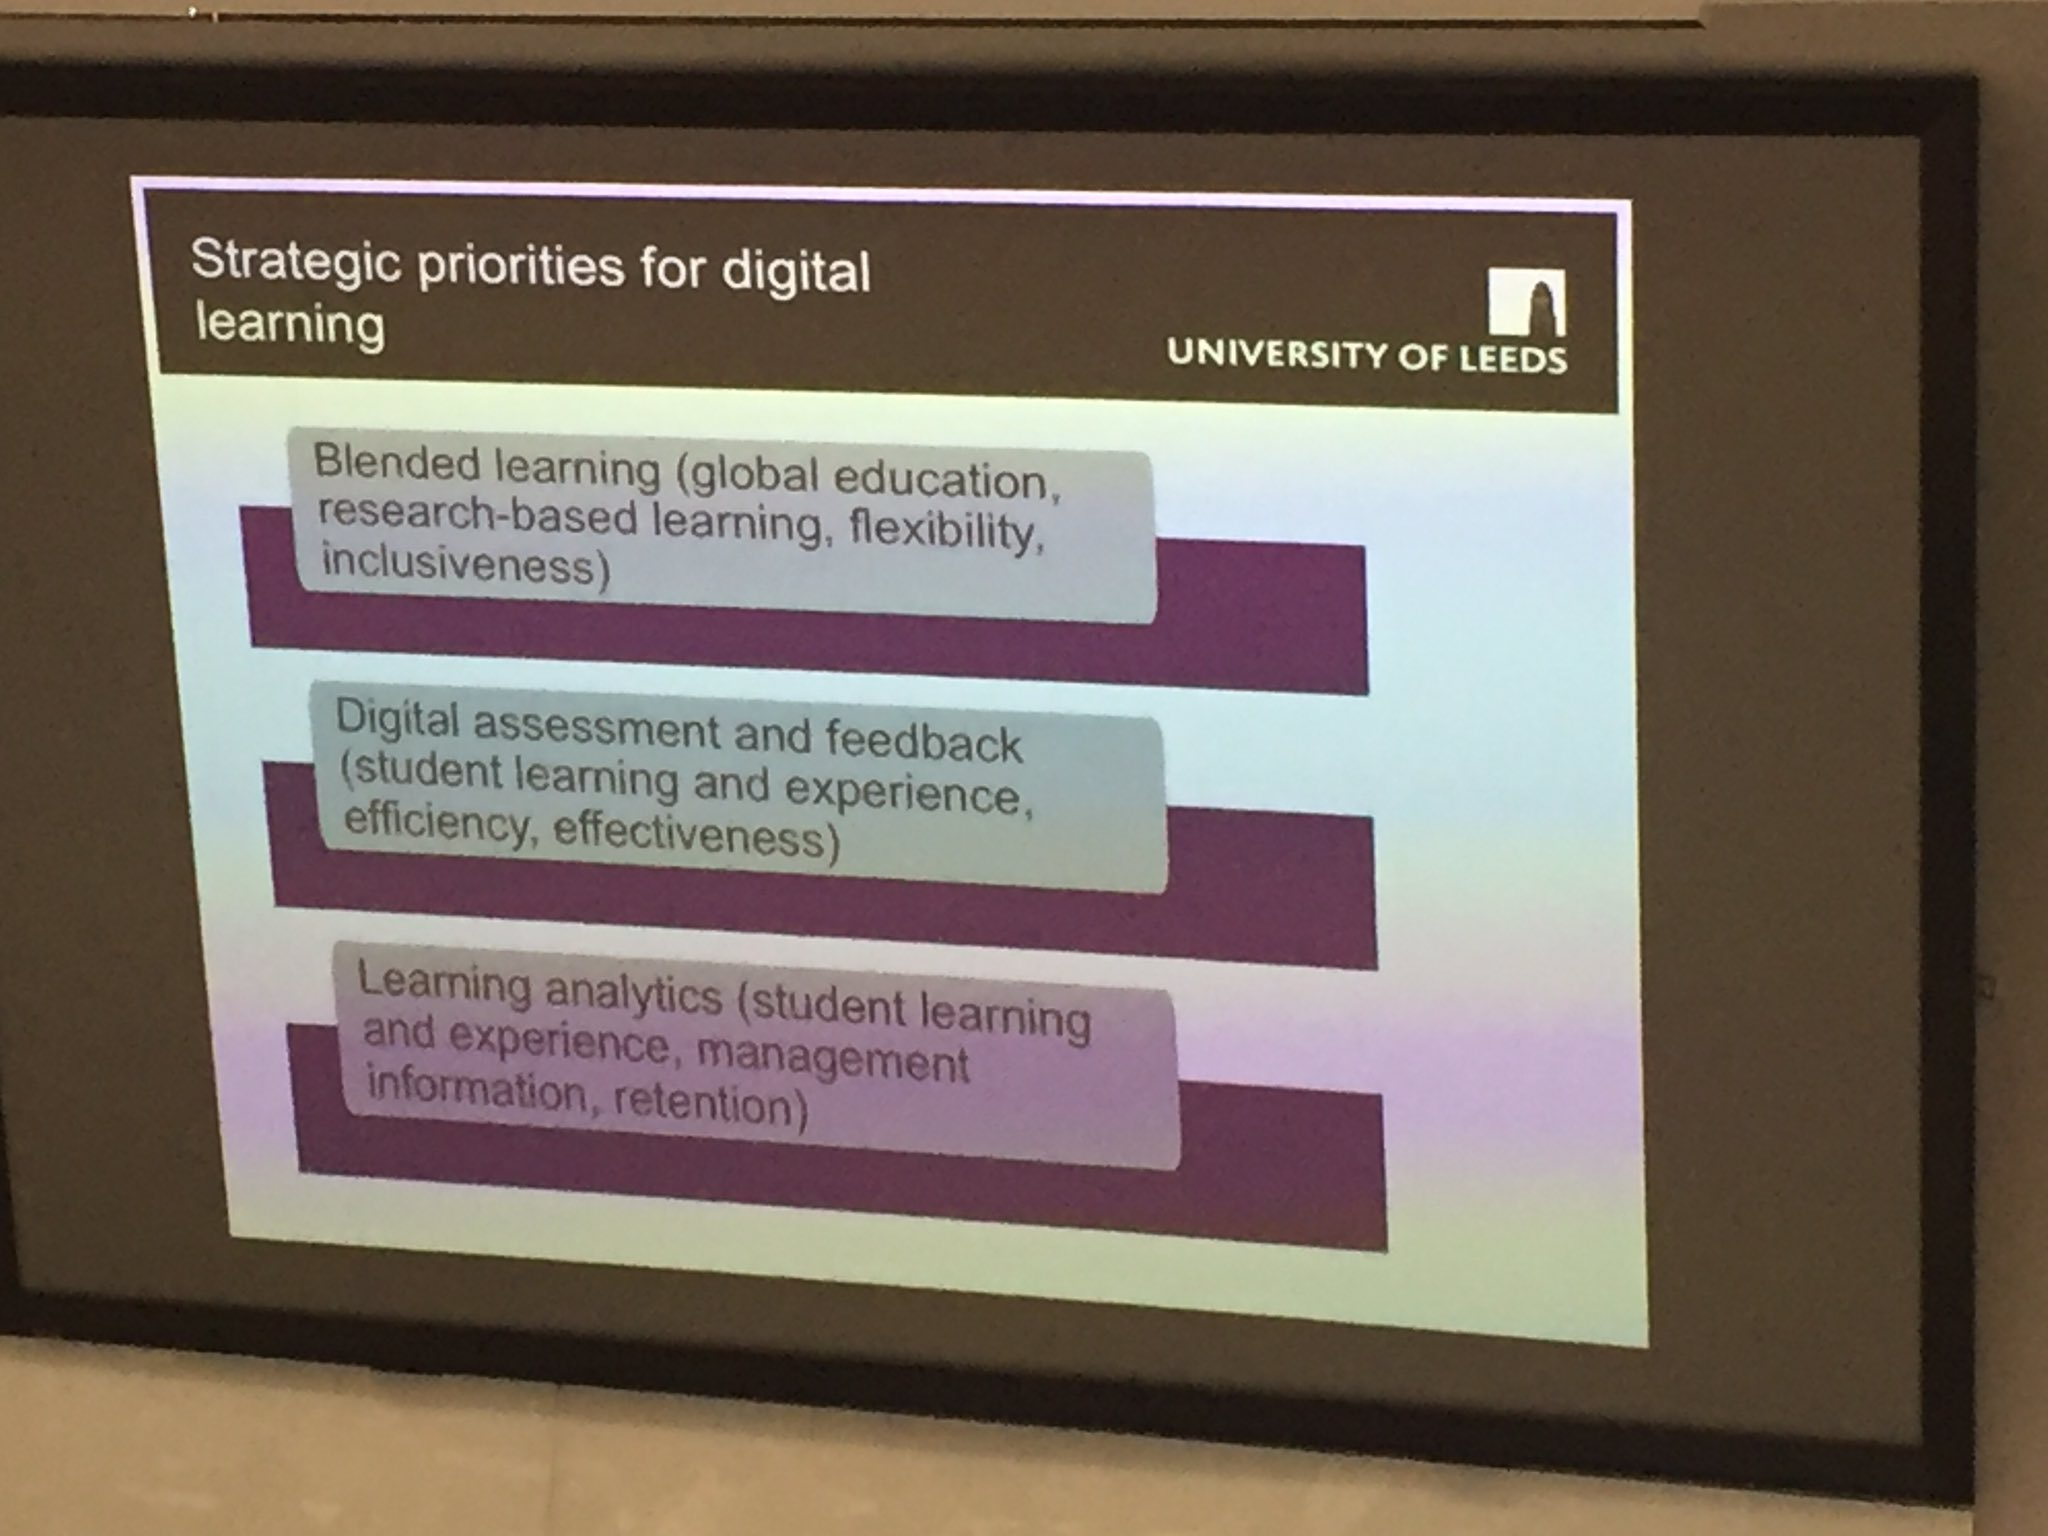 Strategic priorities for digital learning  #CUCEI17 https://t.co/tFtQkny0Xy